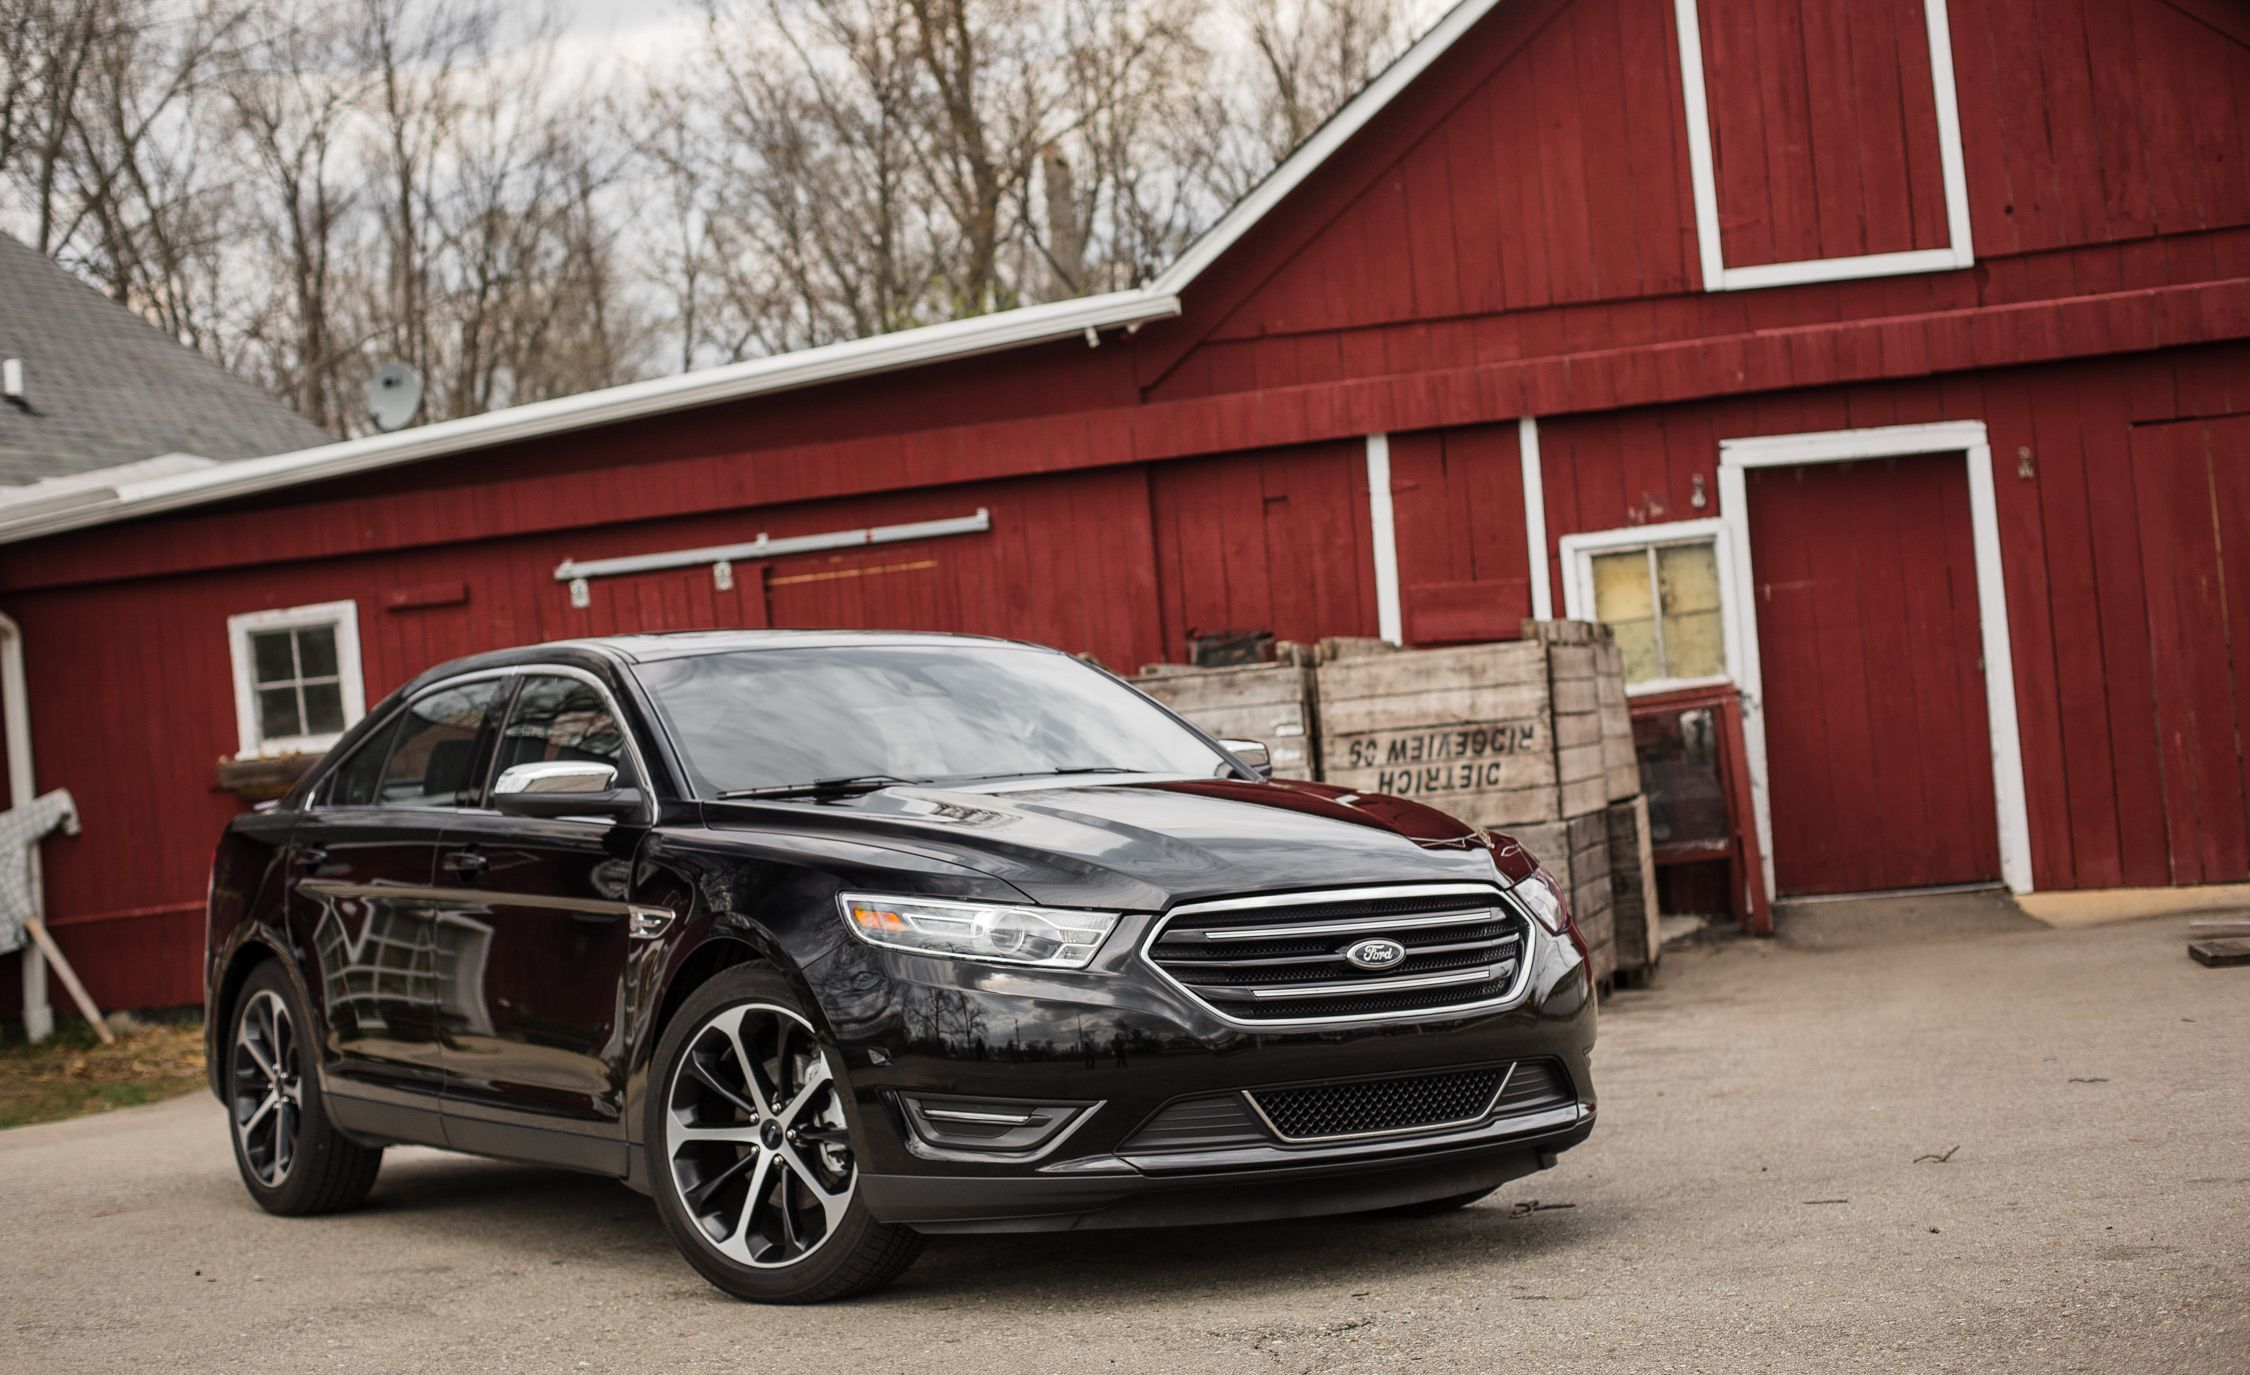 Ford taurus reviews ford taurus price photos and specs car and driver